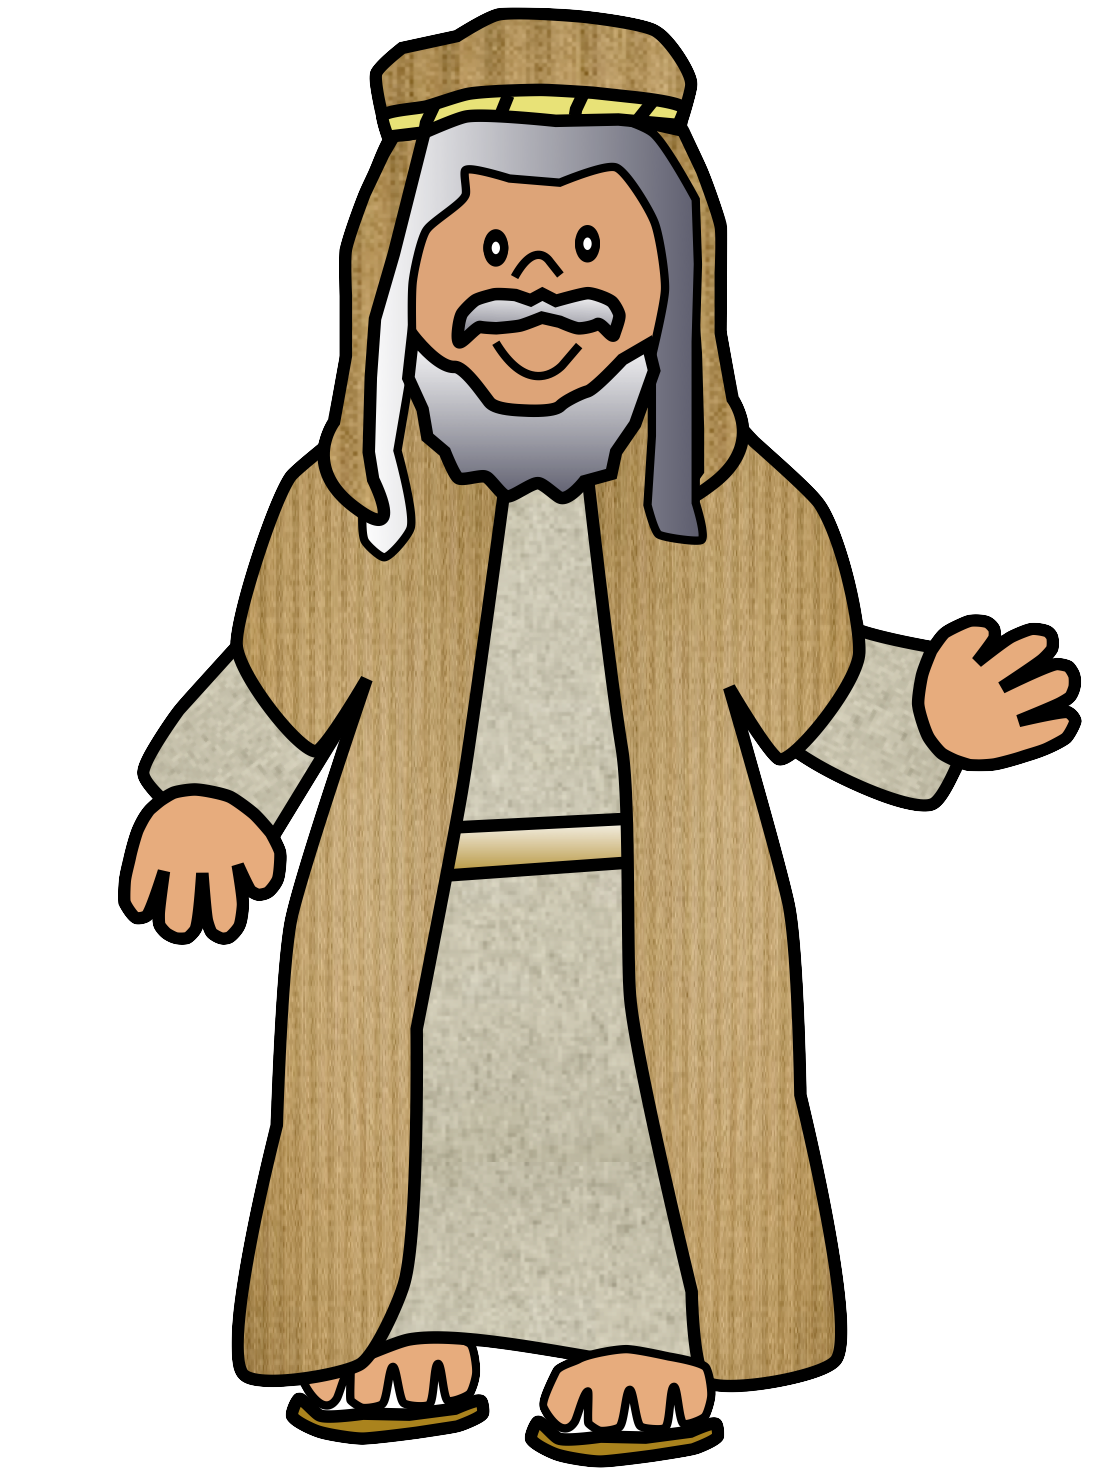 Bible clipart man. Clip art of characters